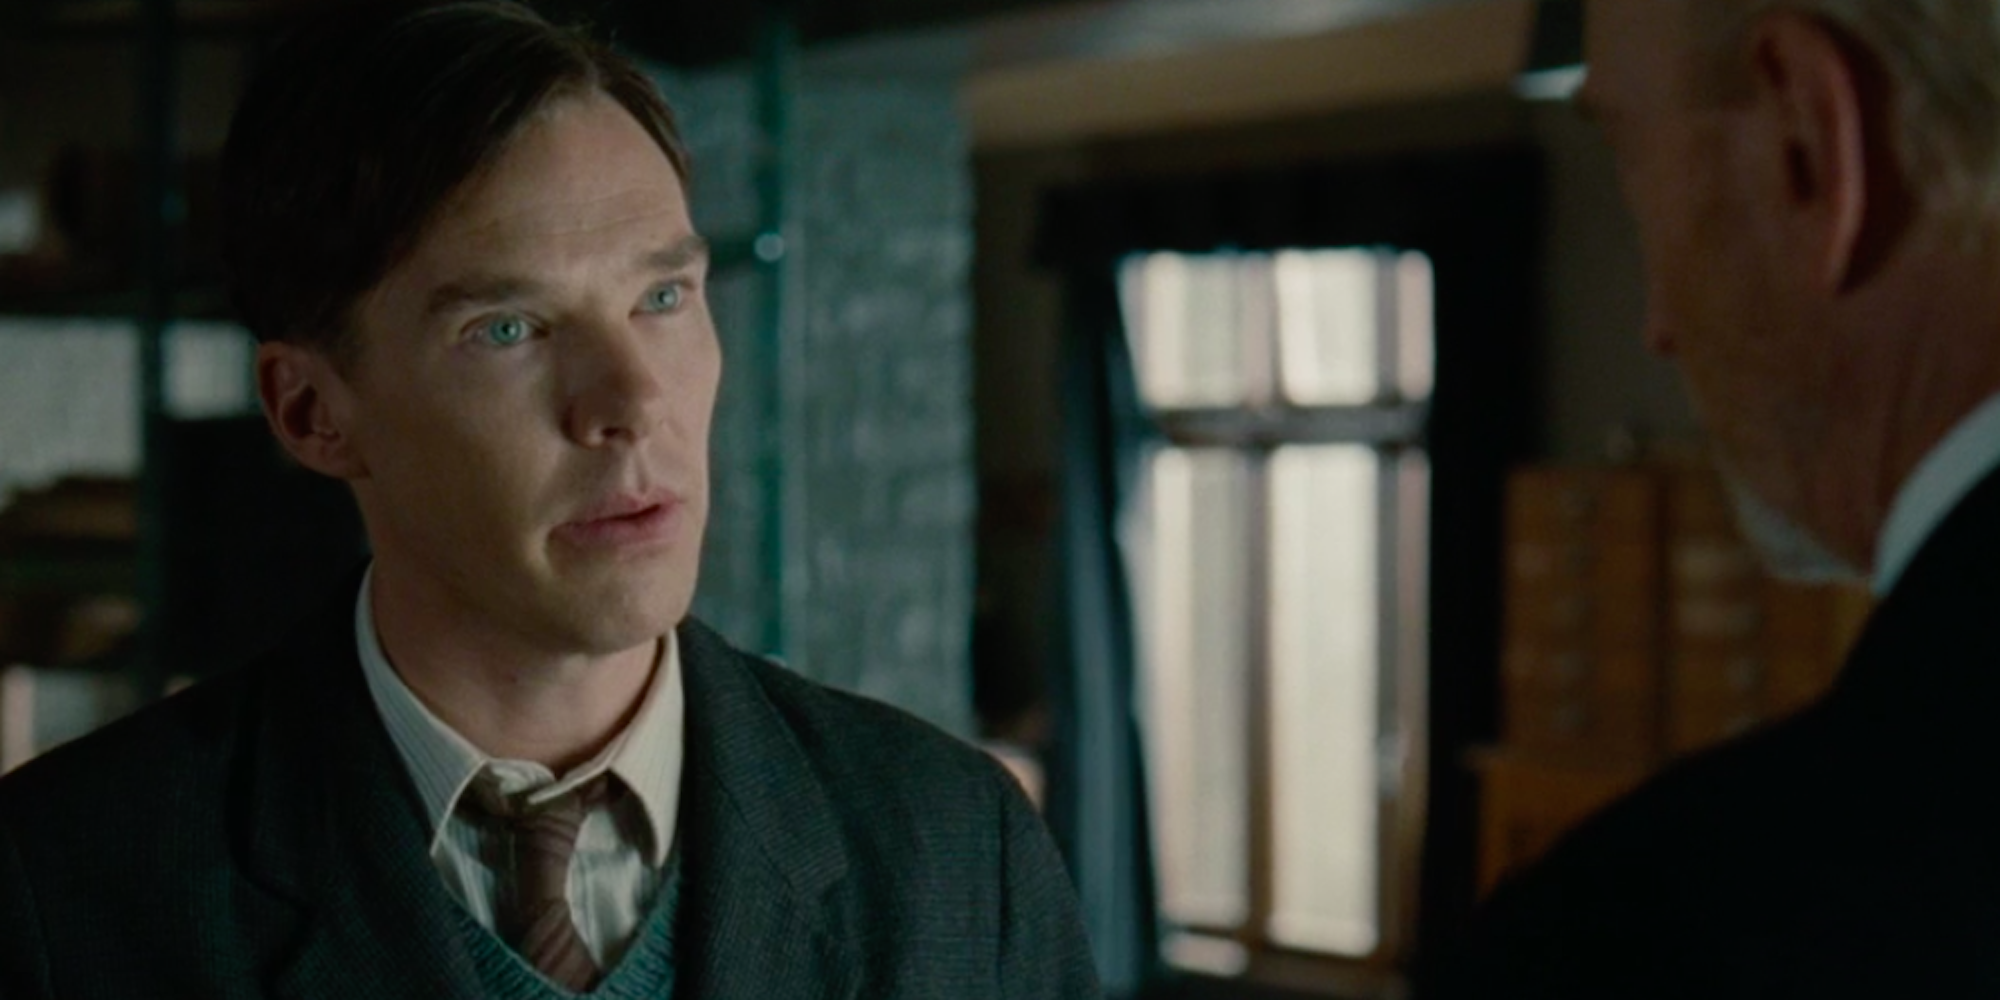 Utsnitt fra filmen The Imitation Game.